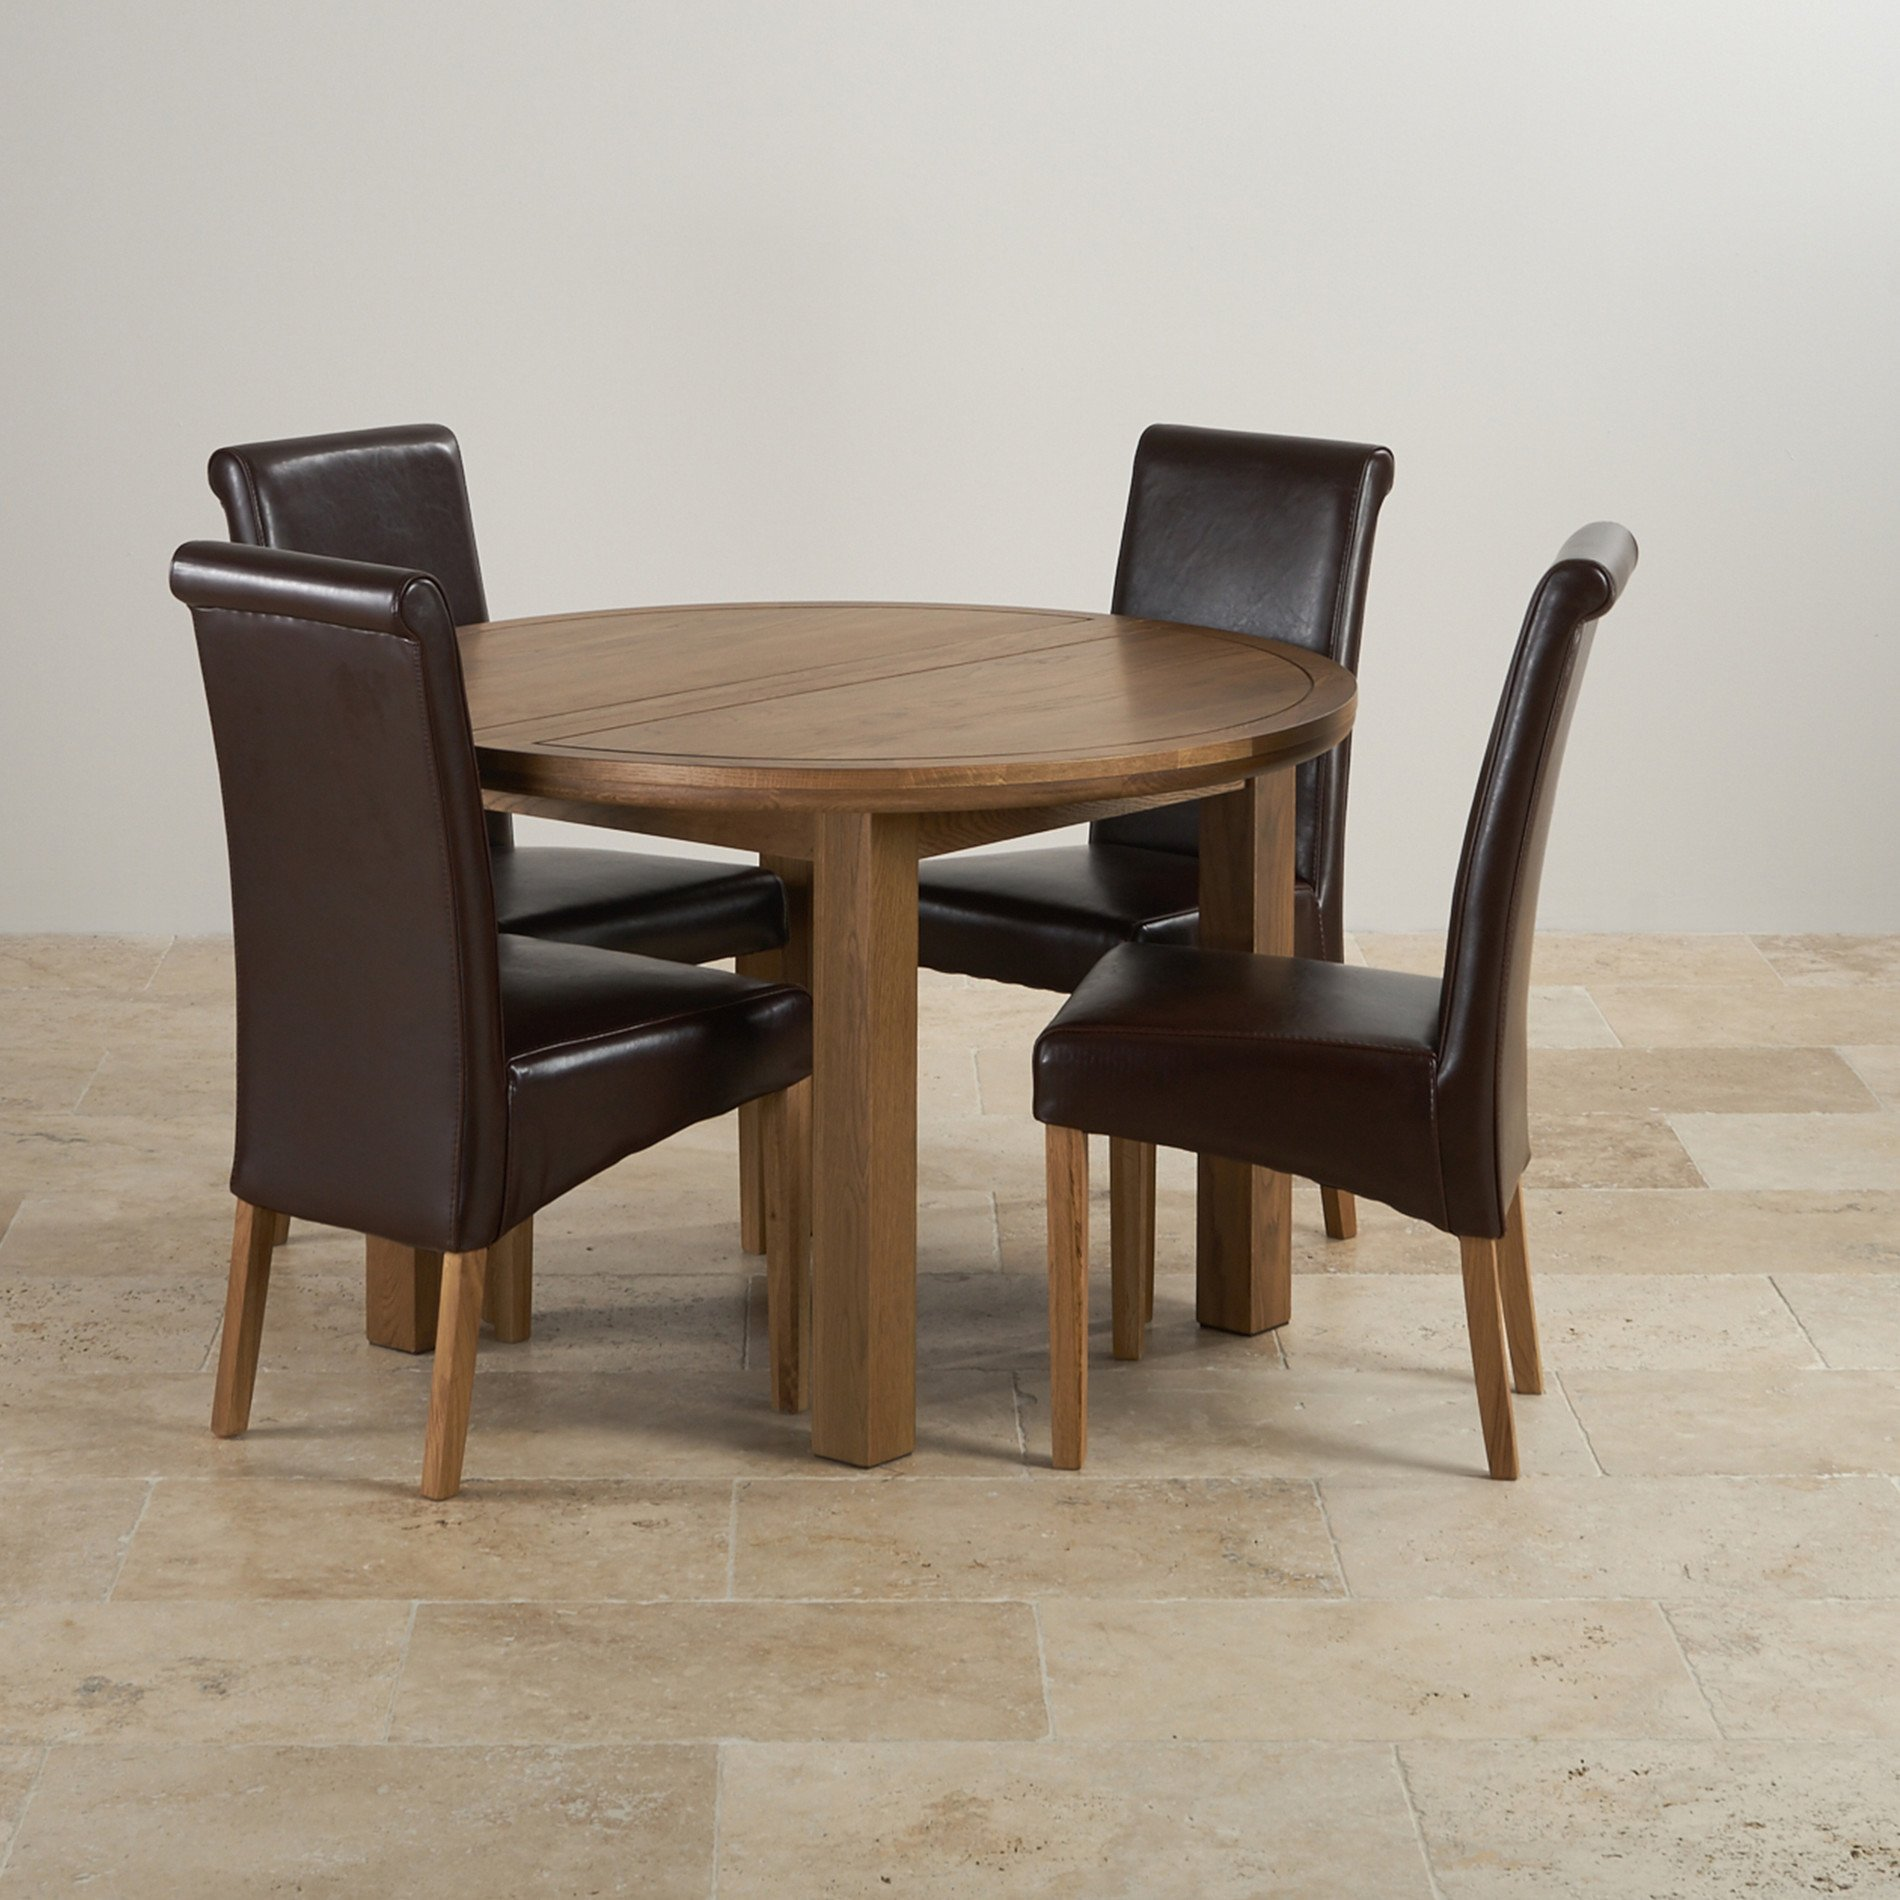 Knightsbridge Round Extending Dining Set Dining Table 4 Chairs